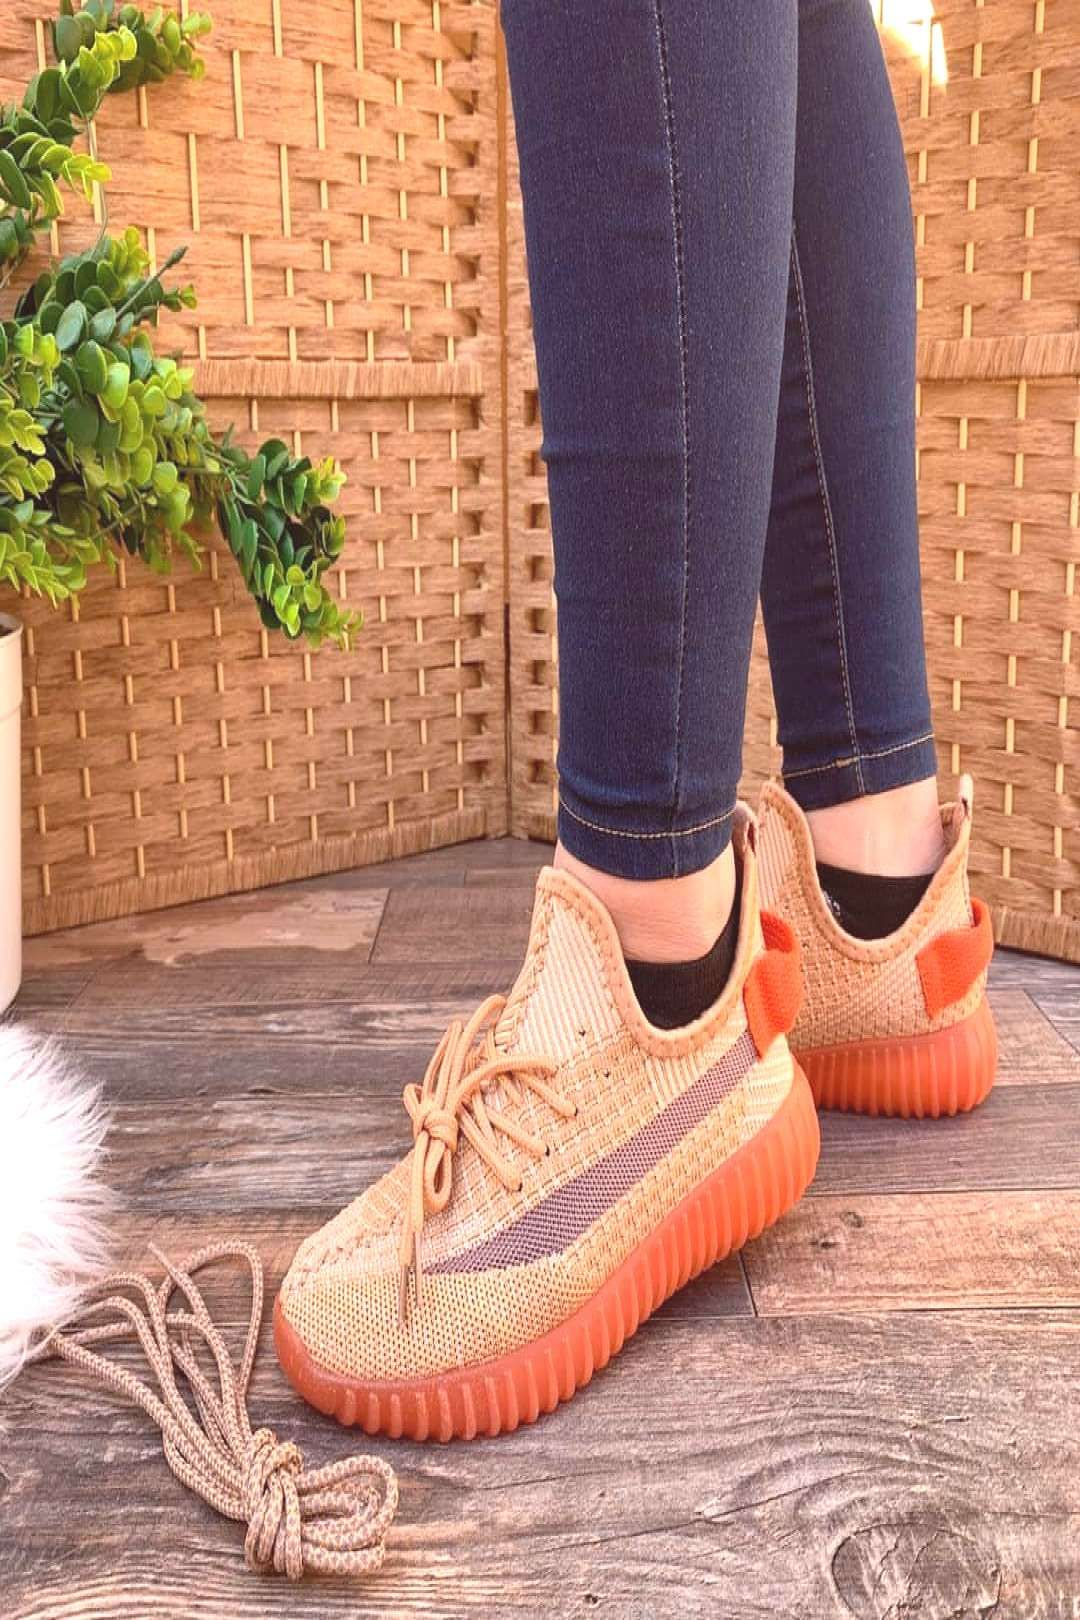 Shoes شوزات ماركة اديداس المقاسات ٣٦ الى You Can Find Moroccan Dress And More On Our Website شوزات ماركة Platform Sneakers Adidas Yeezy Boost Adidas Sneakers